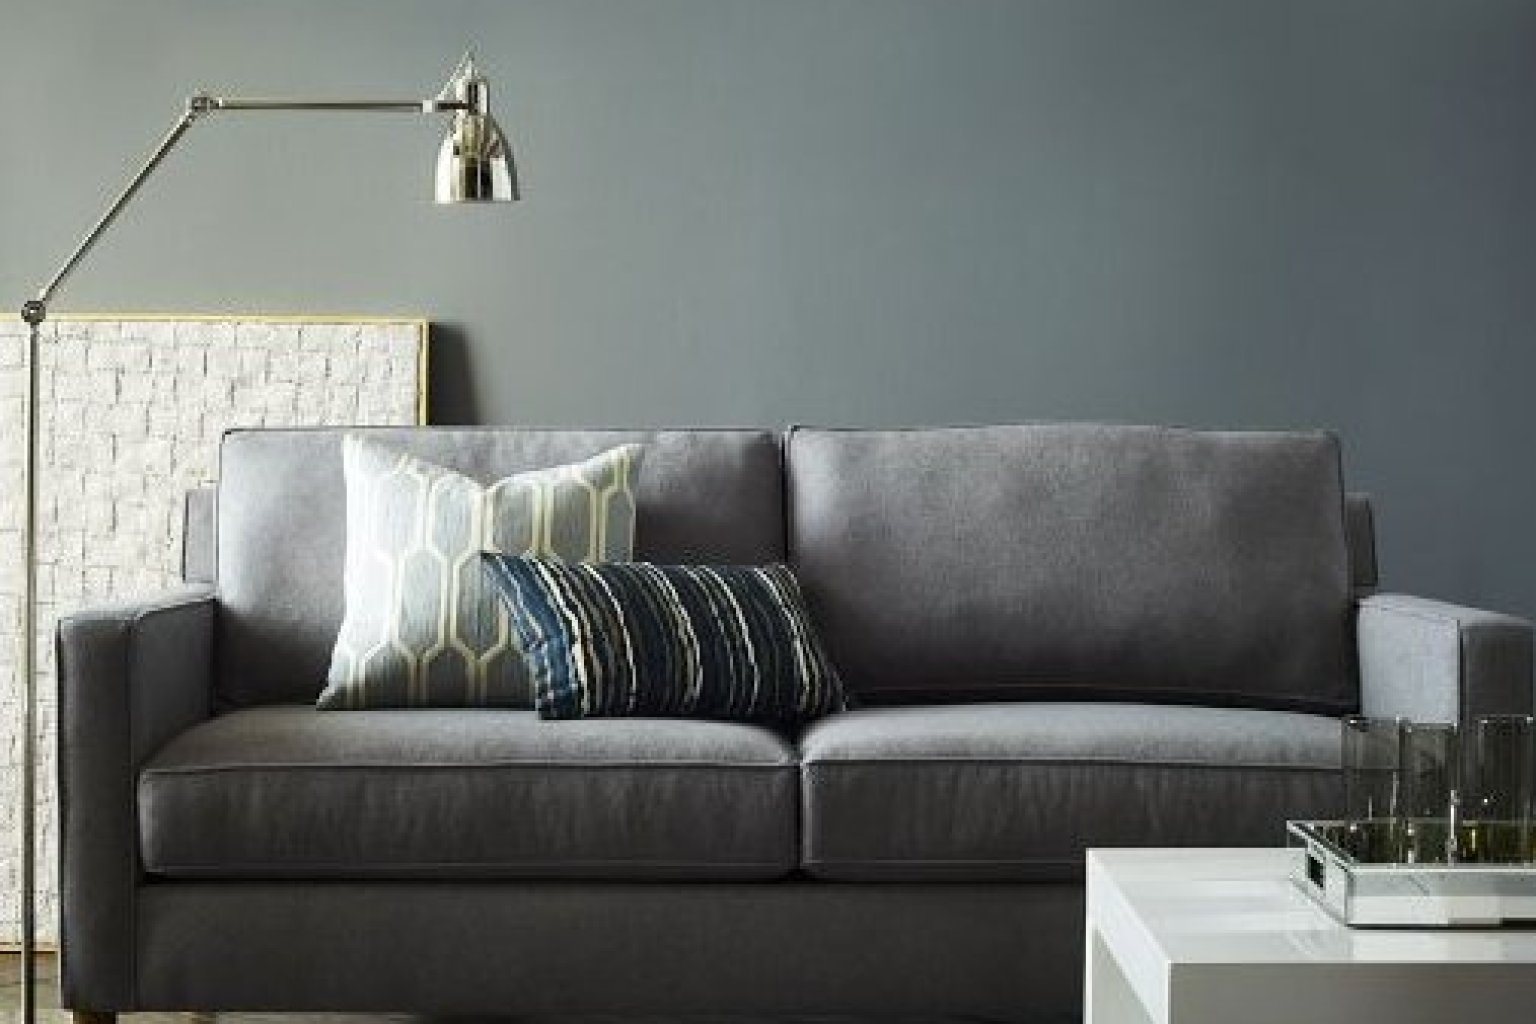 6 Couches For Small Apartments That Will Actually Fit In Your Space  (PHOTOS) | HuffPost